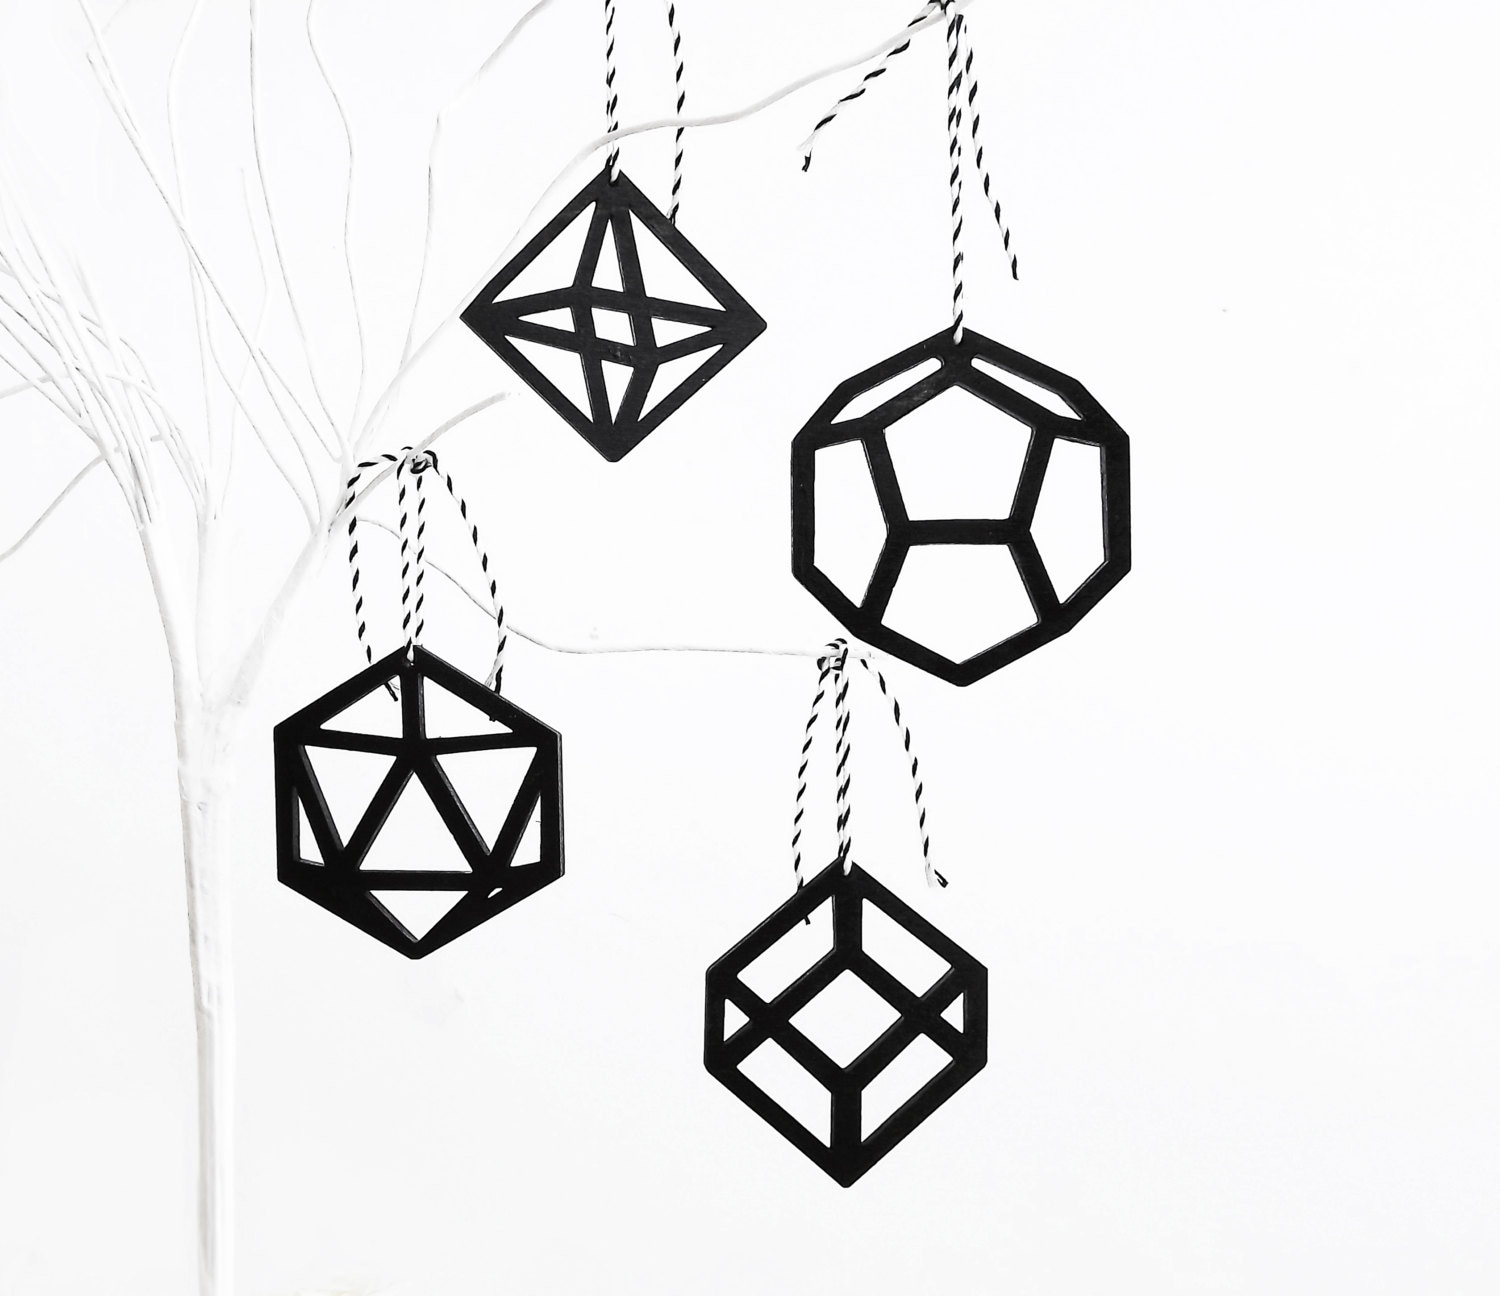 Geometric Modern Black Christmas Tree Ornaments Decorations - Laser Cut x4 - SketchInc